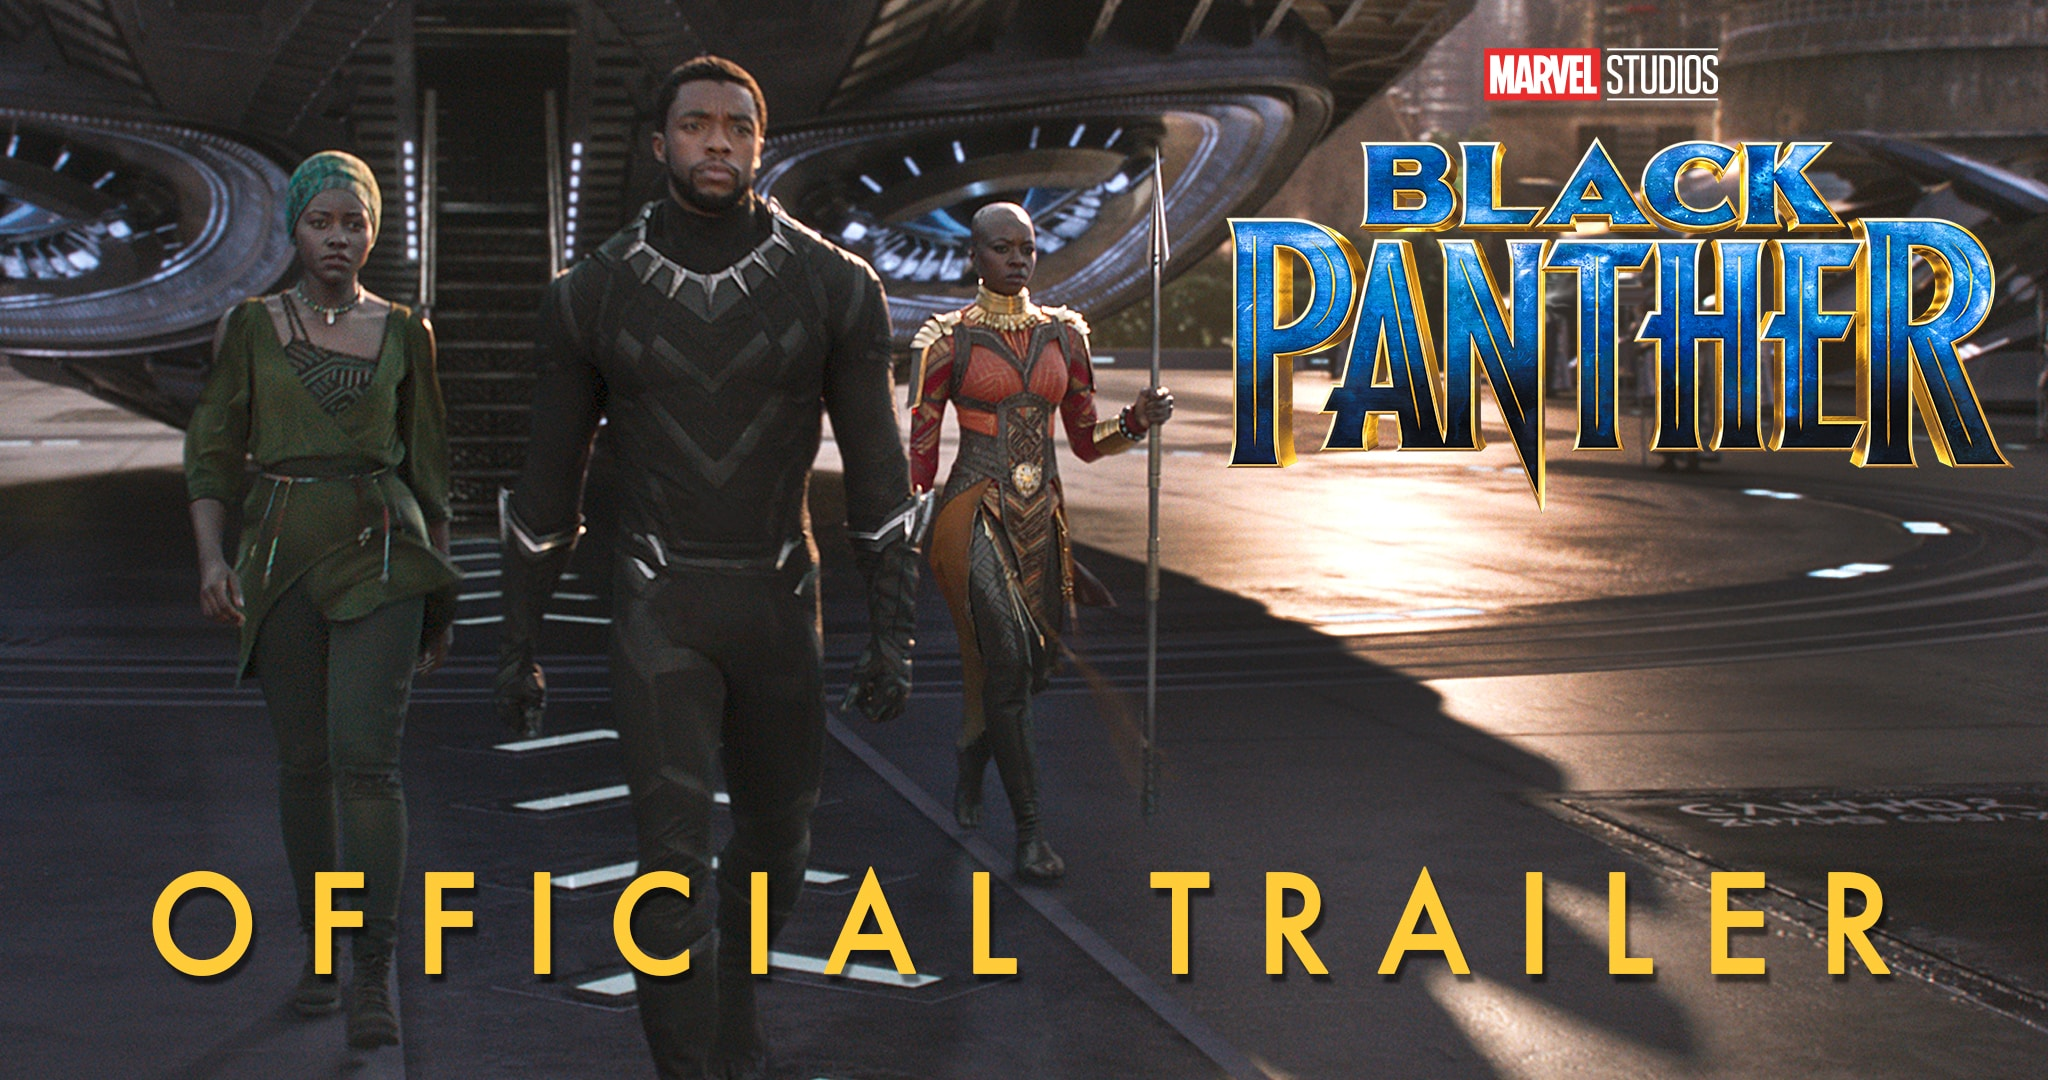 Marvel Studios - Black Panther - Official Trailer Australia